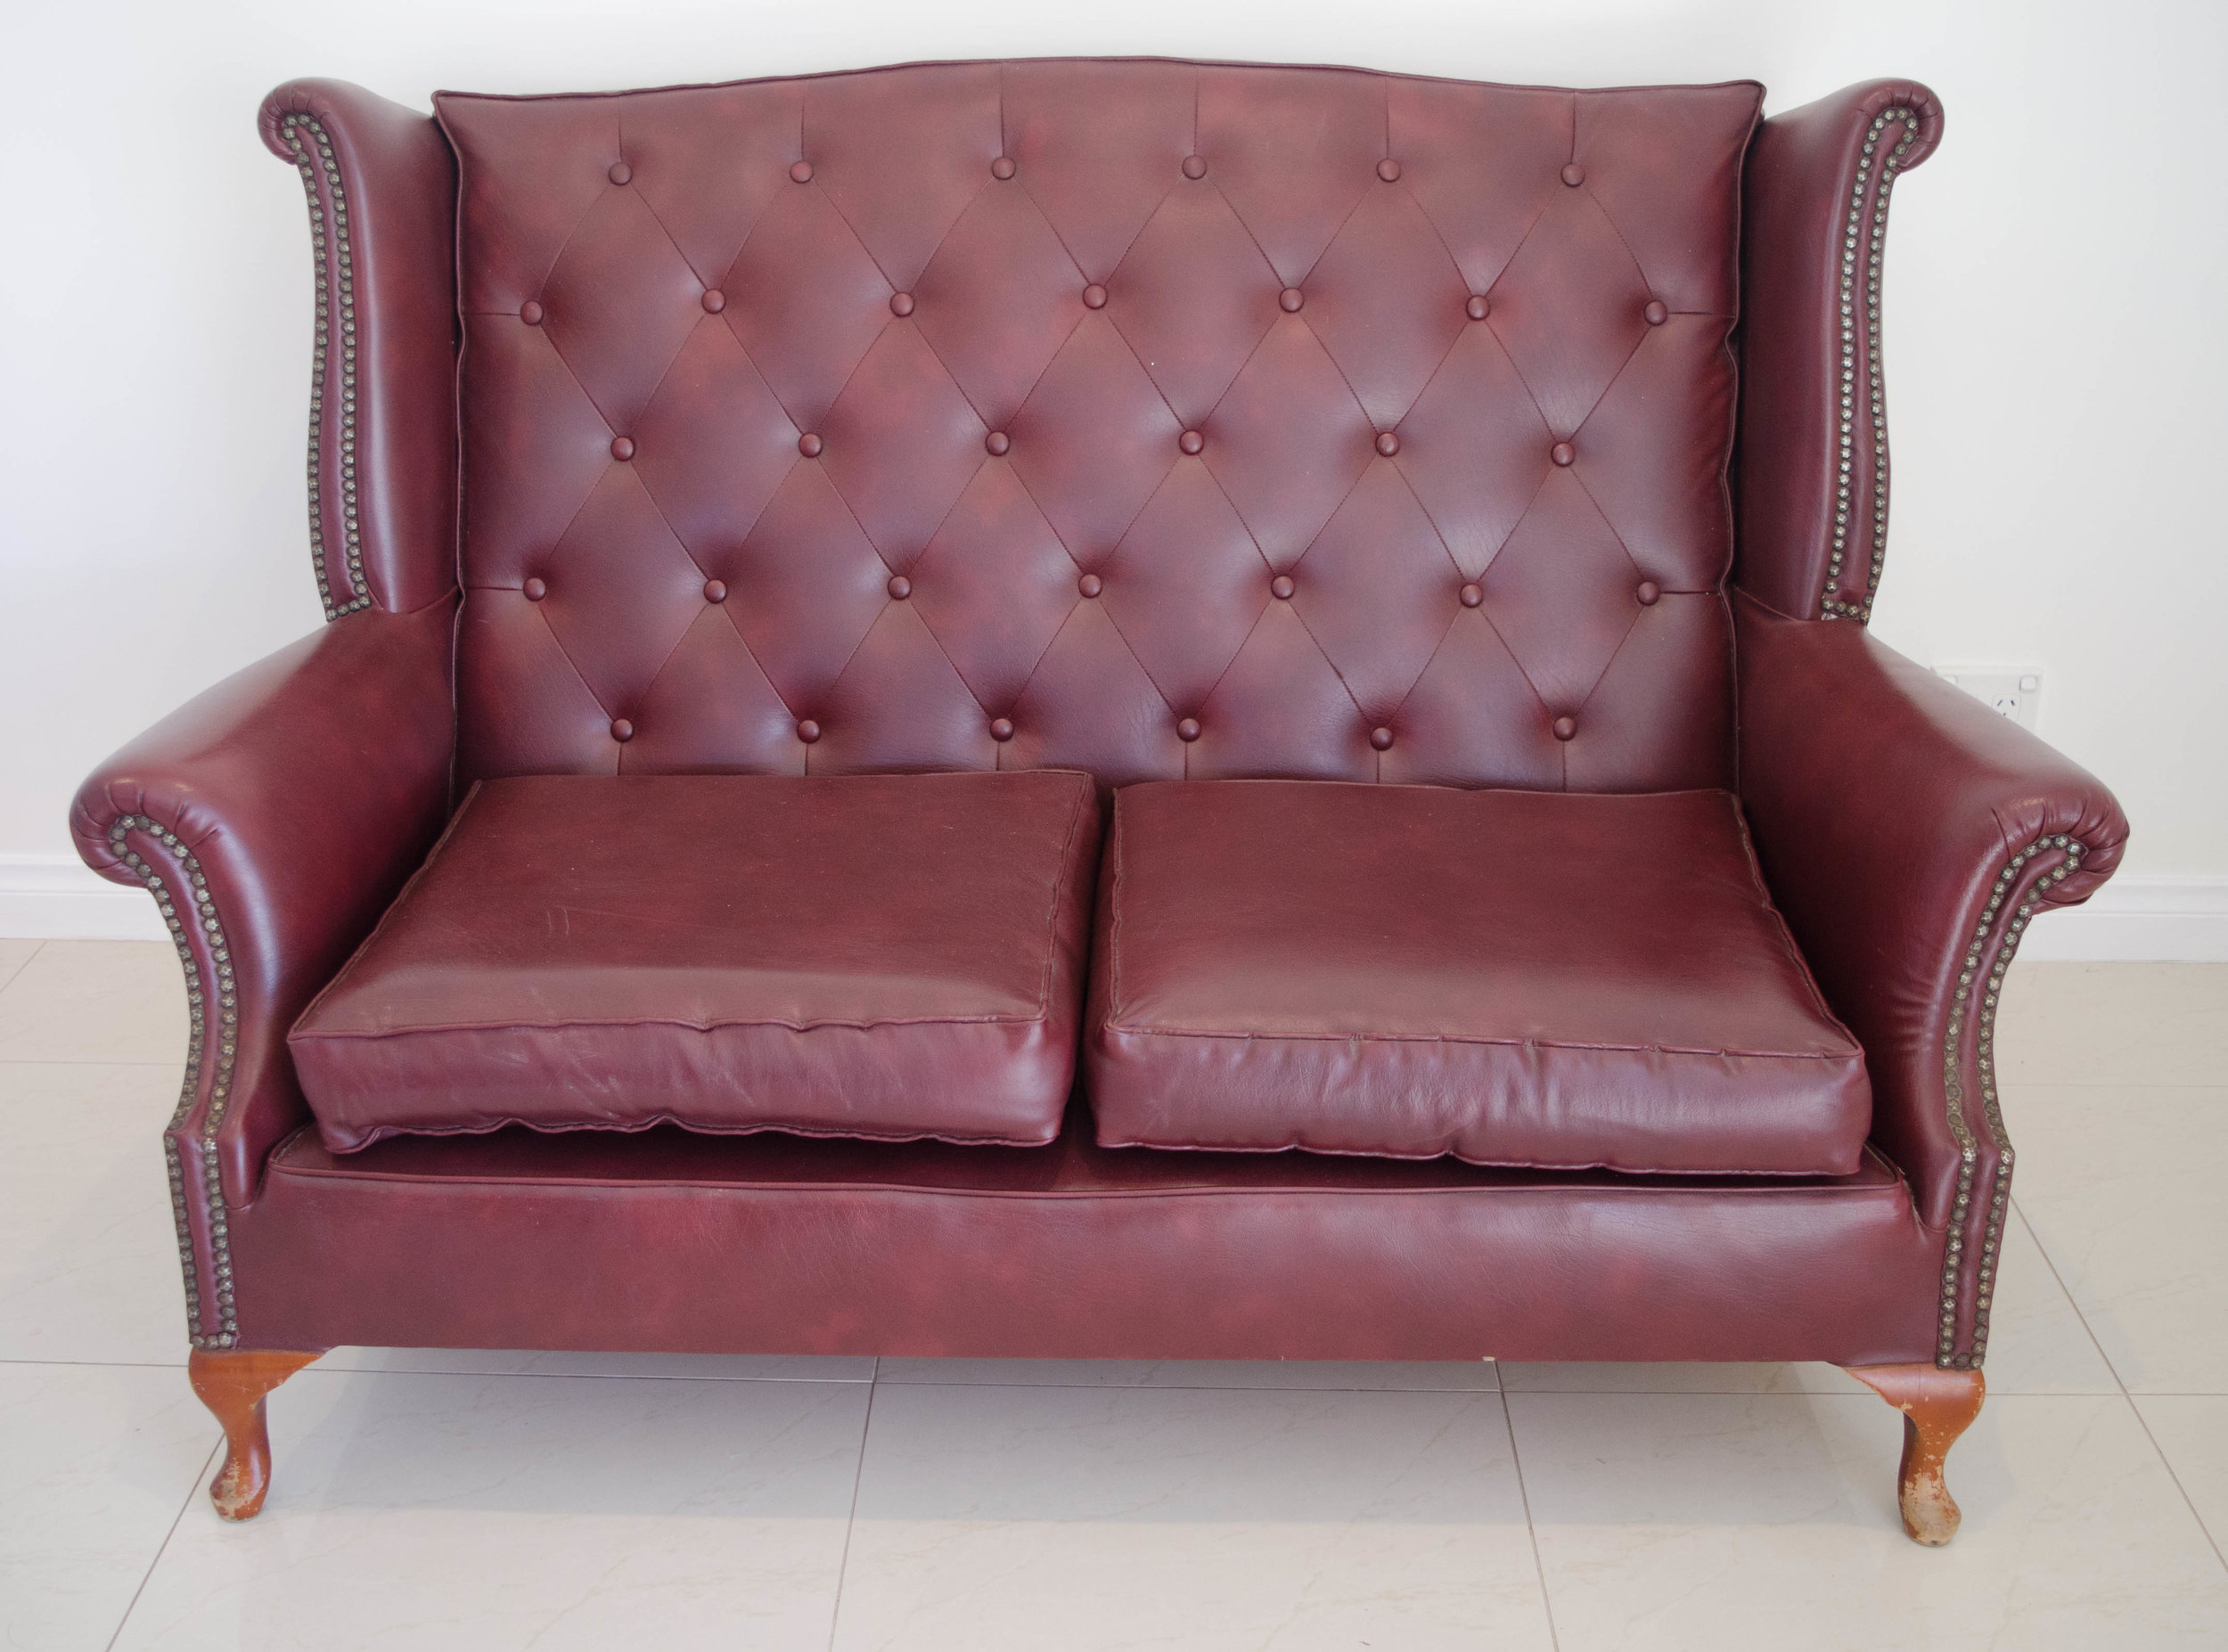 Chester Lounge burgundy    $150.00 + GST (3-DAY HIRE)                                            QUANTITY: 1